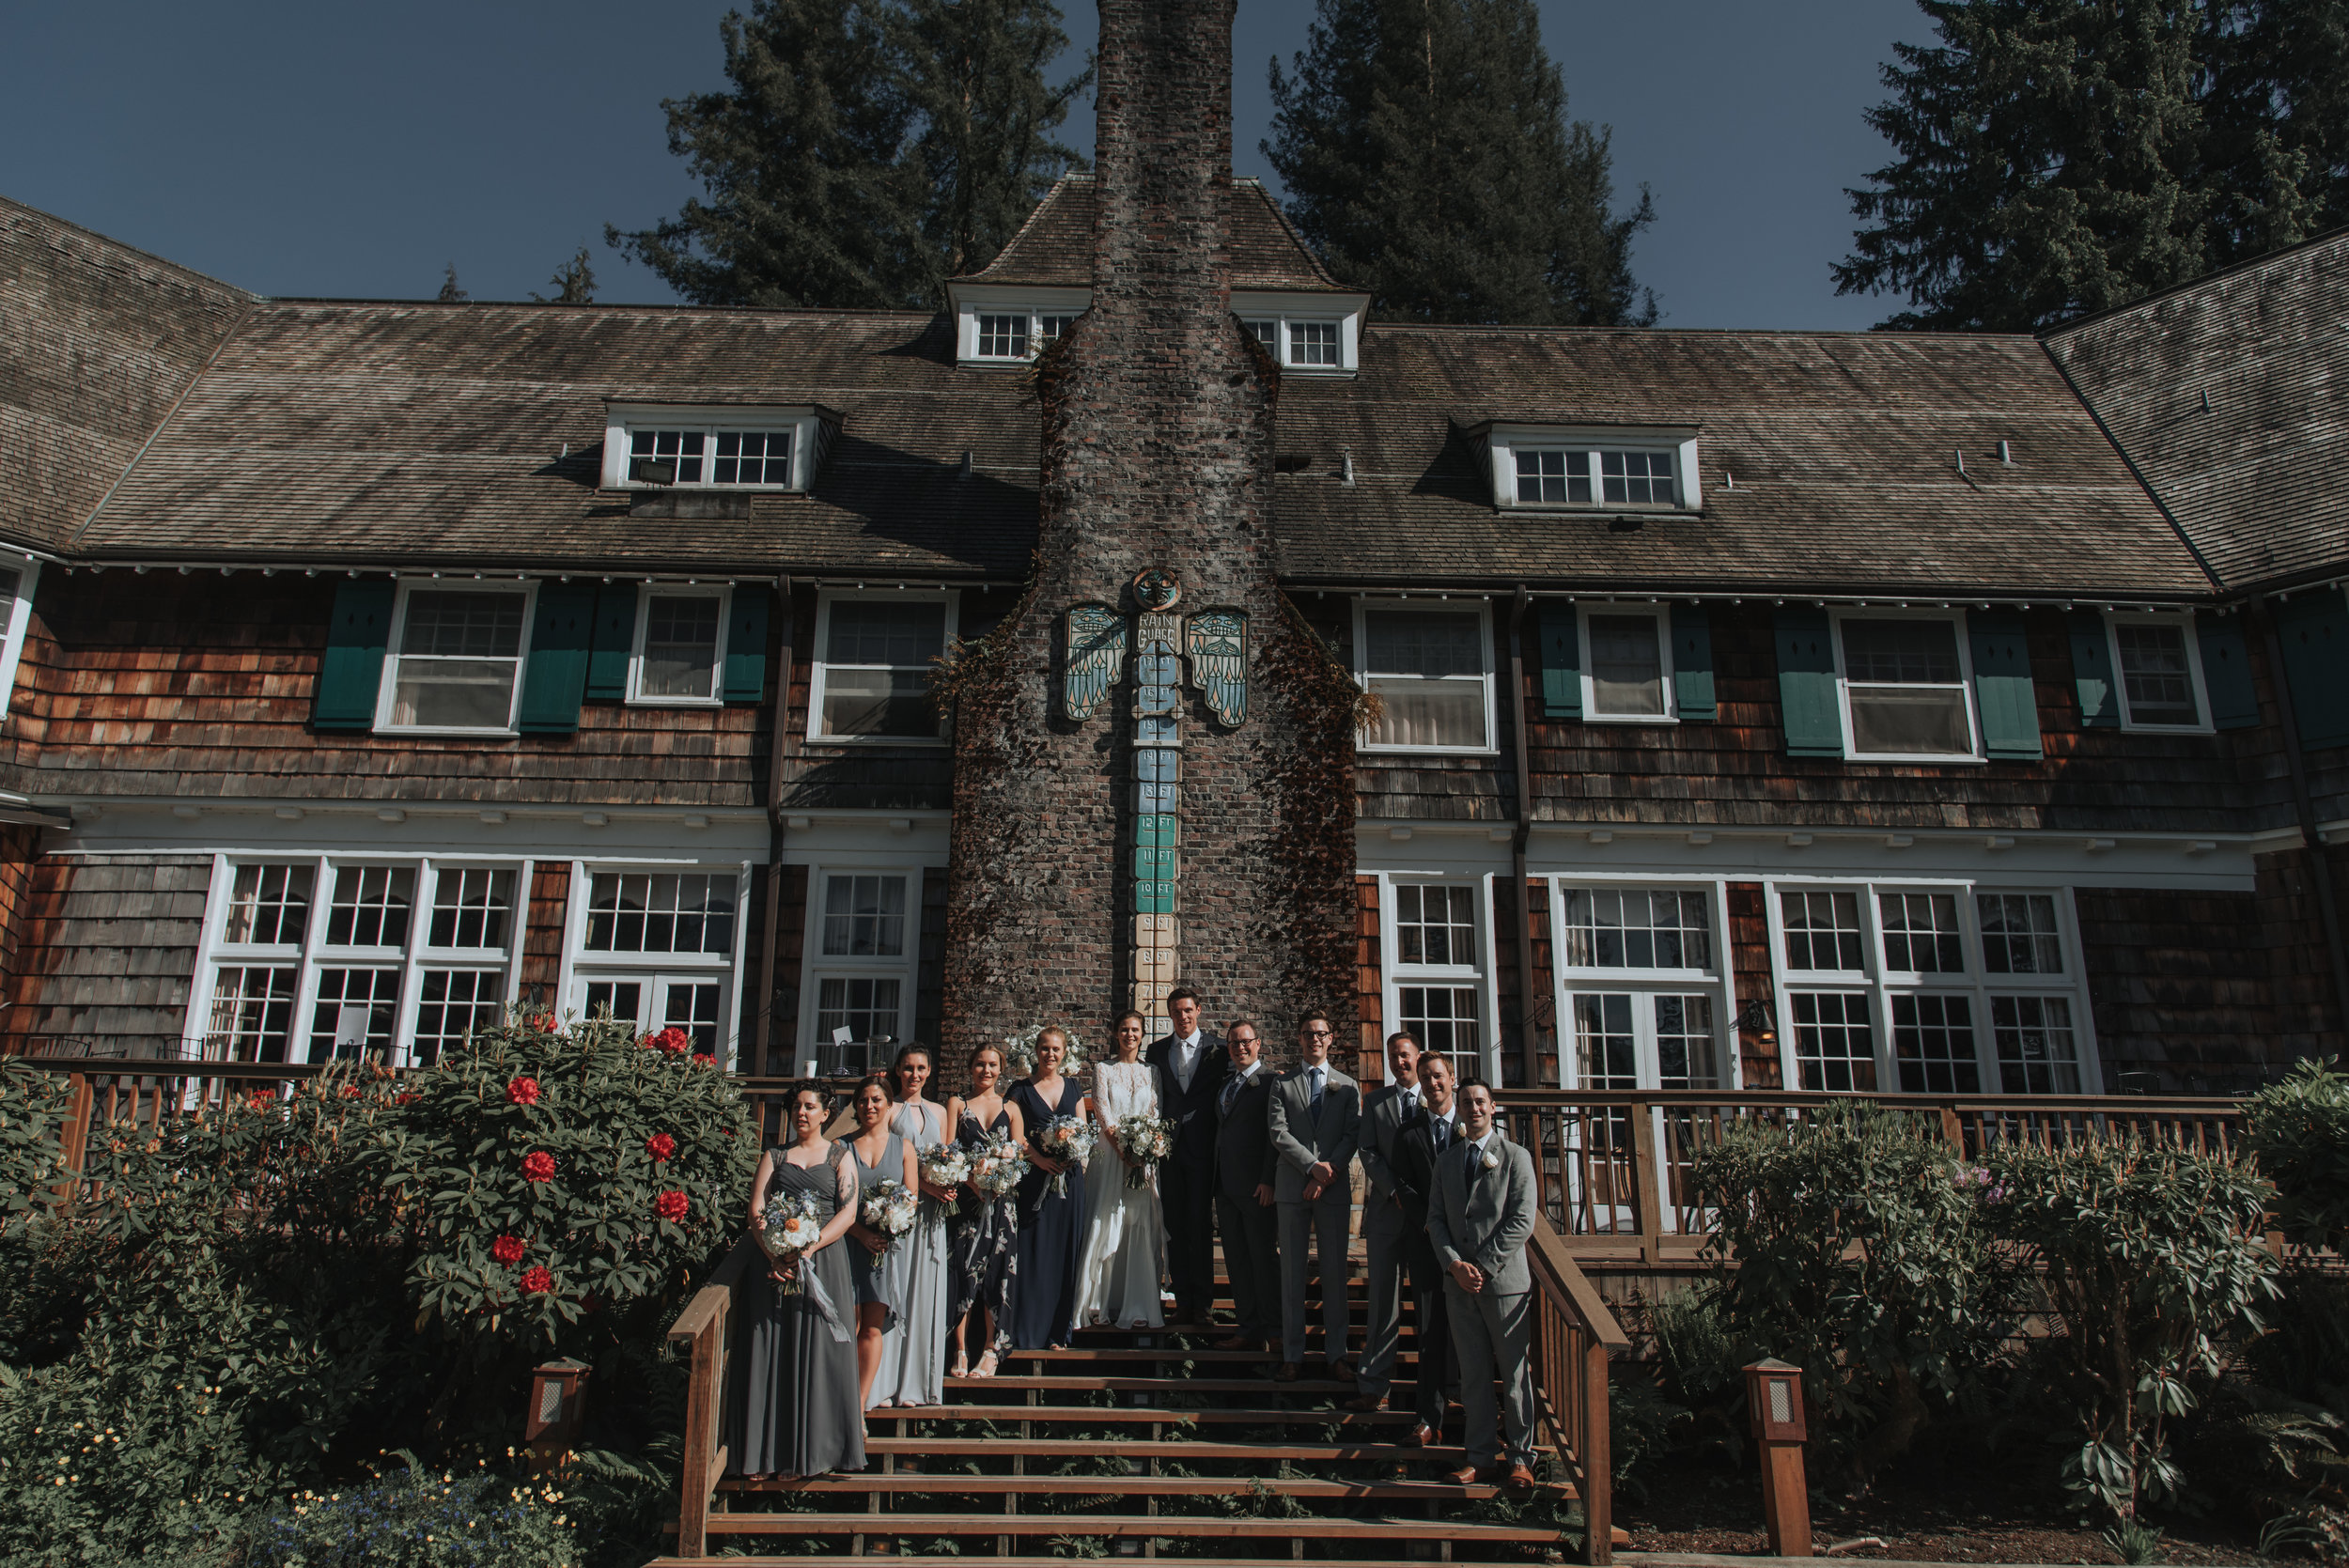 The wedding party posing in front of the  Lake Quinault Lodge . Photo by Logan Smith Photography.